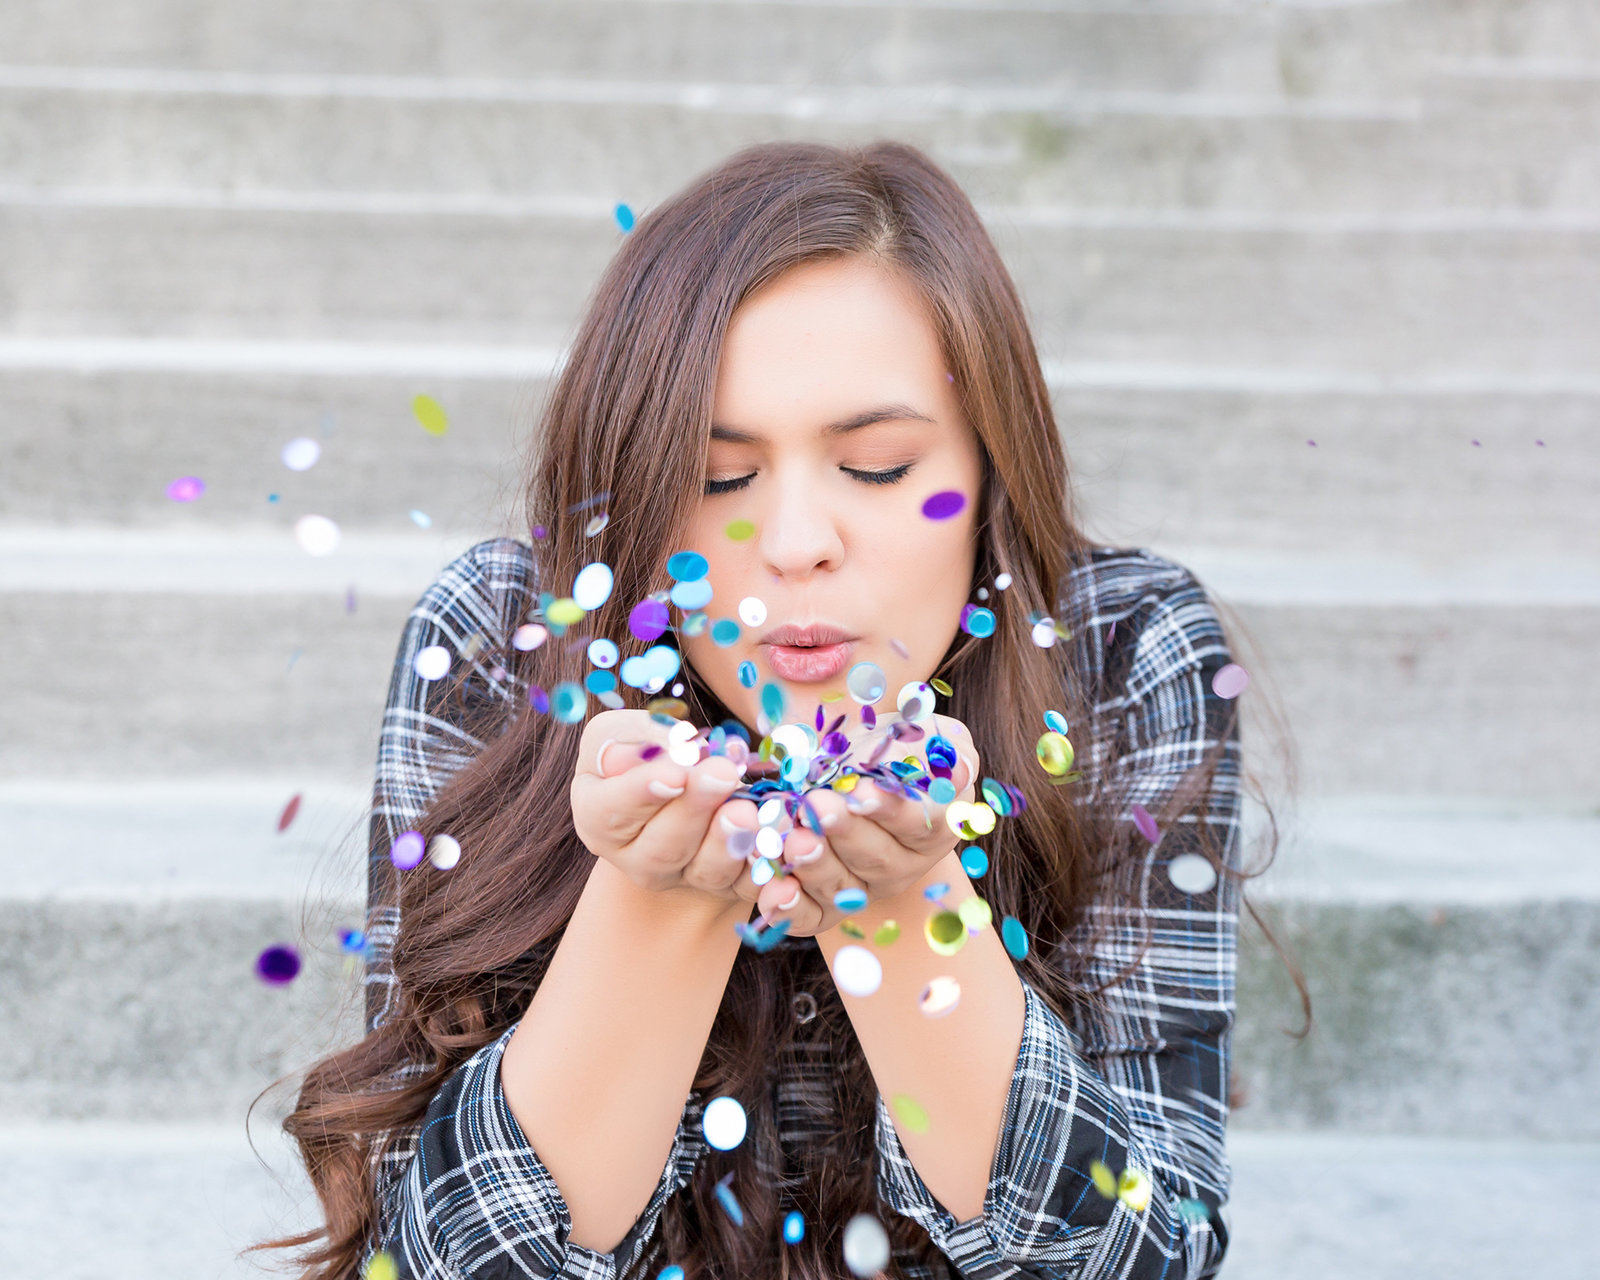 Senior girl sitting on steps-colorful confetti-Fort Wayne IN